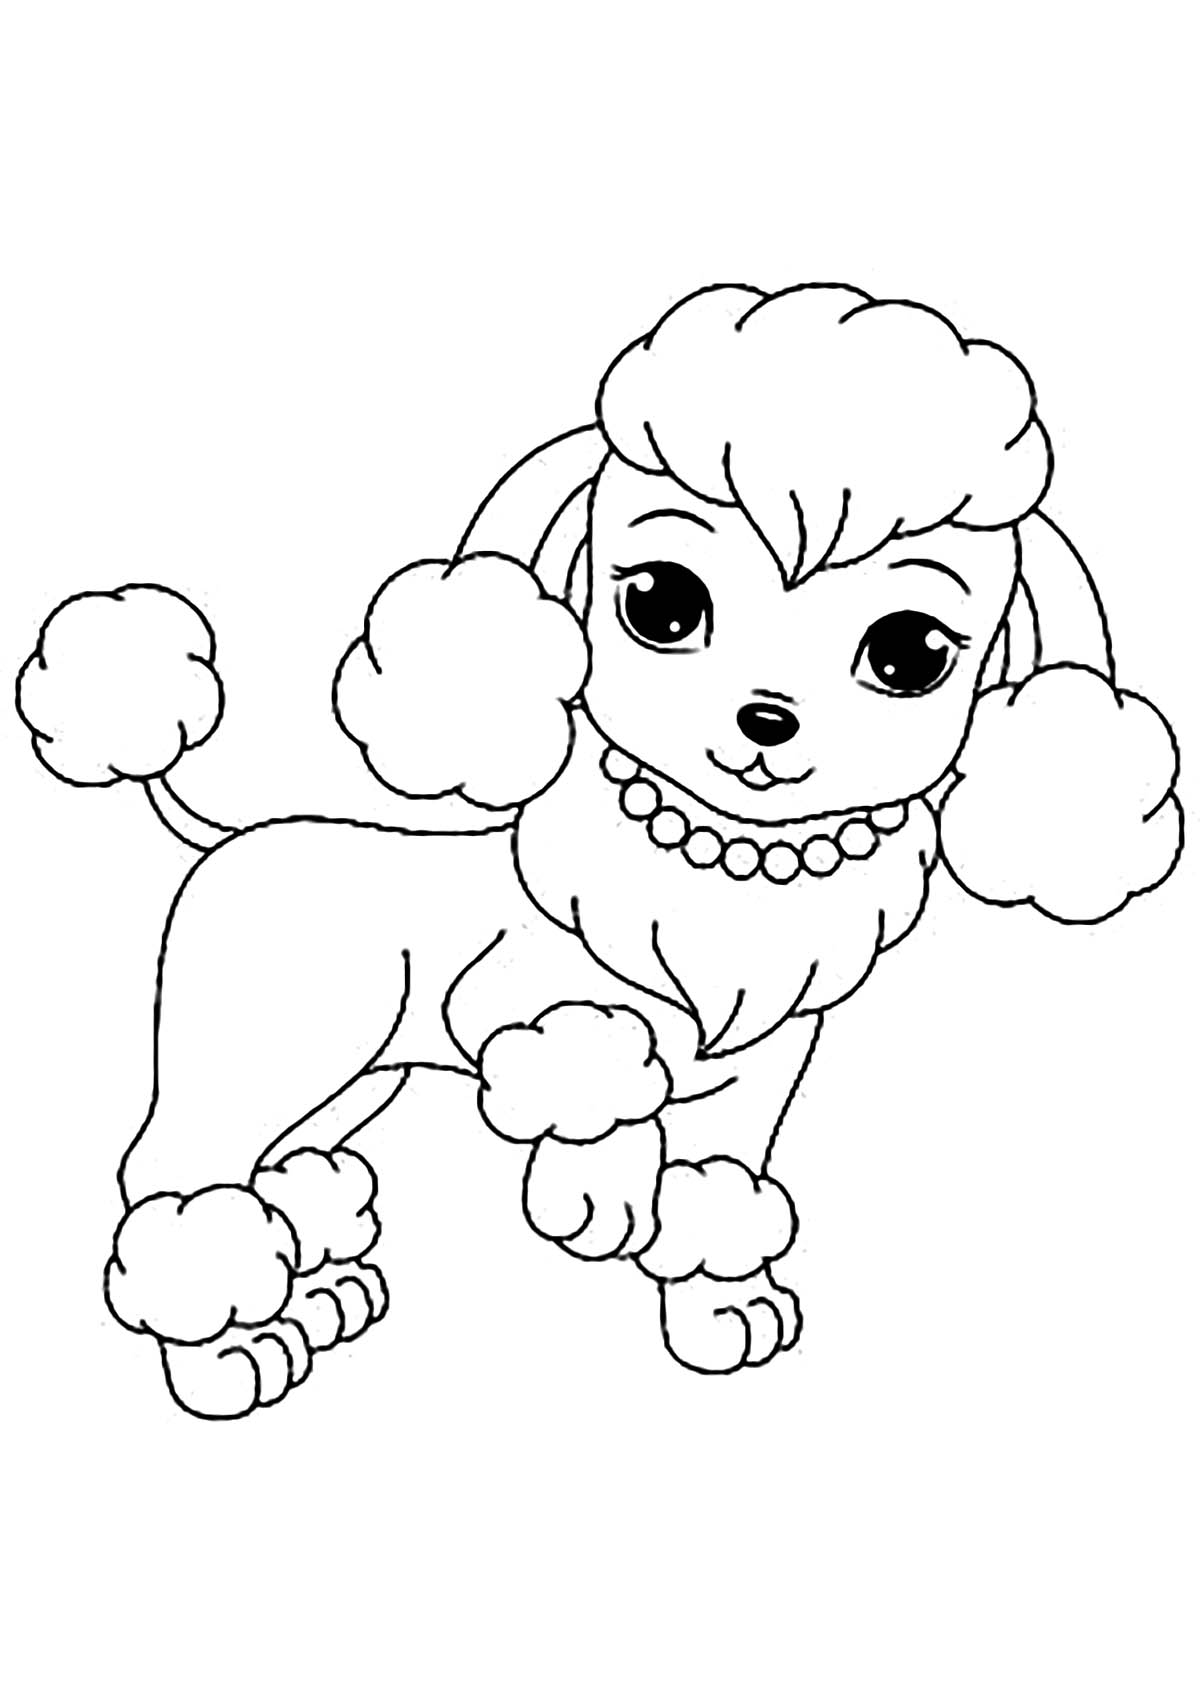 colour in pictures of dogs dog coloring pages for adults best coloring pages for kids colour in pictures of dogs